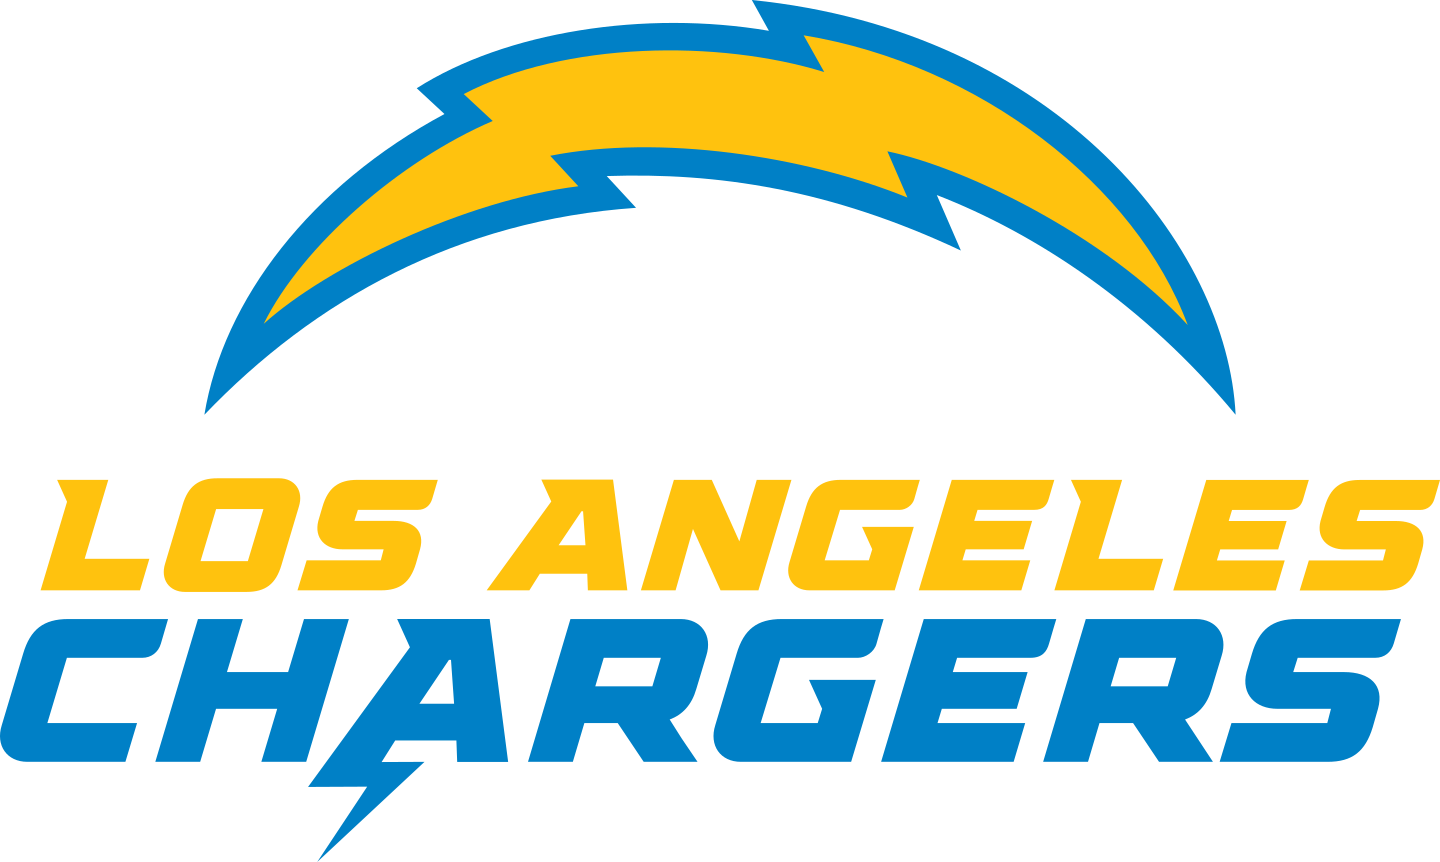 los angeles chargers logo 3 - Los Angeles Chargers Logo